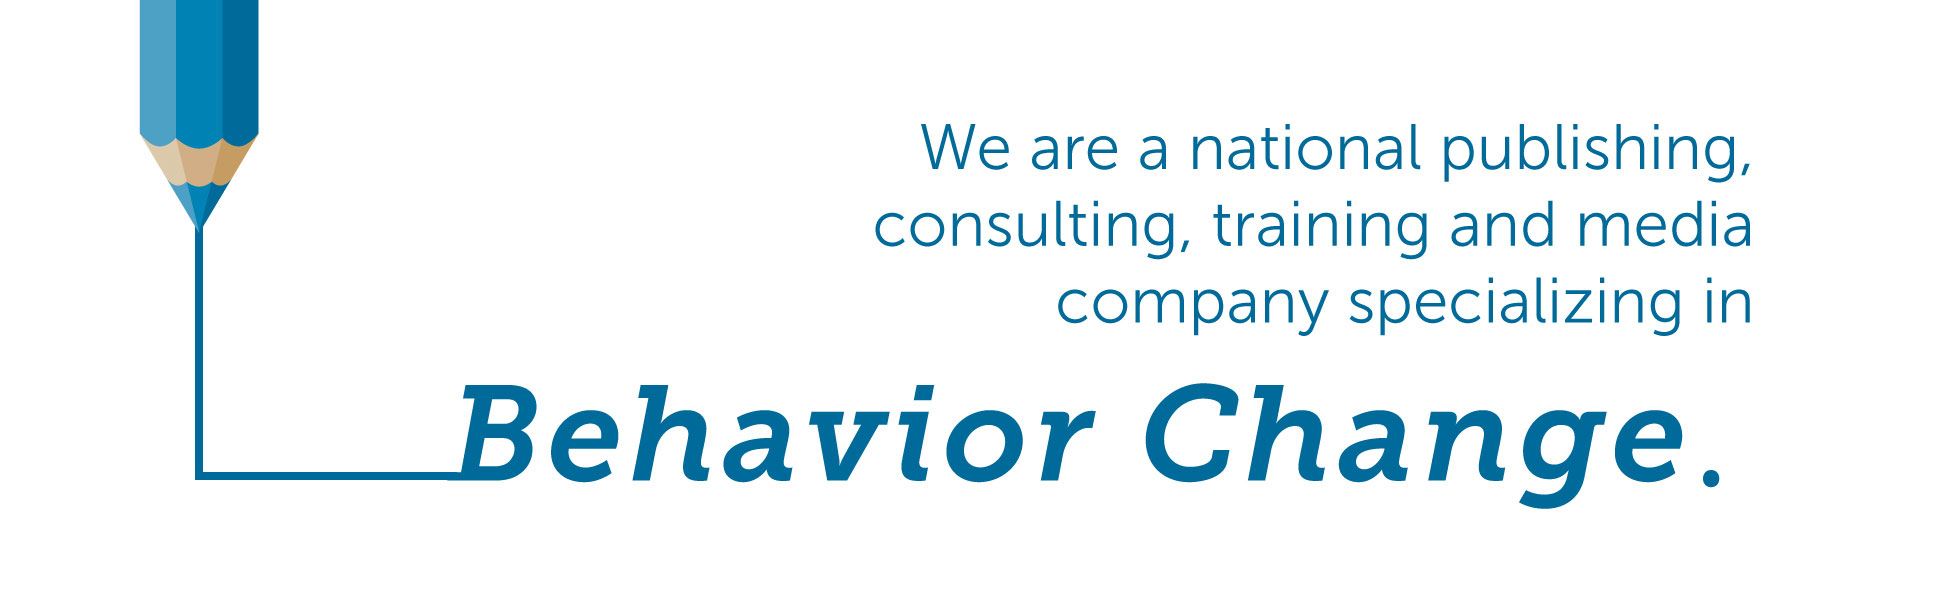 We are a national publishing consulting, training, and media company specializing in behavior change.